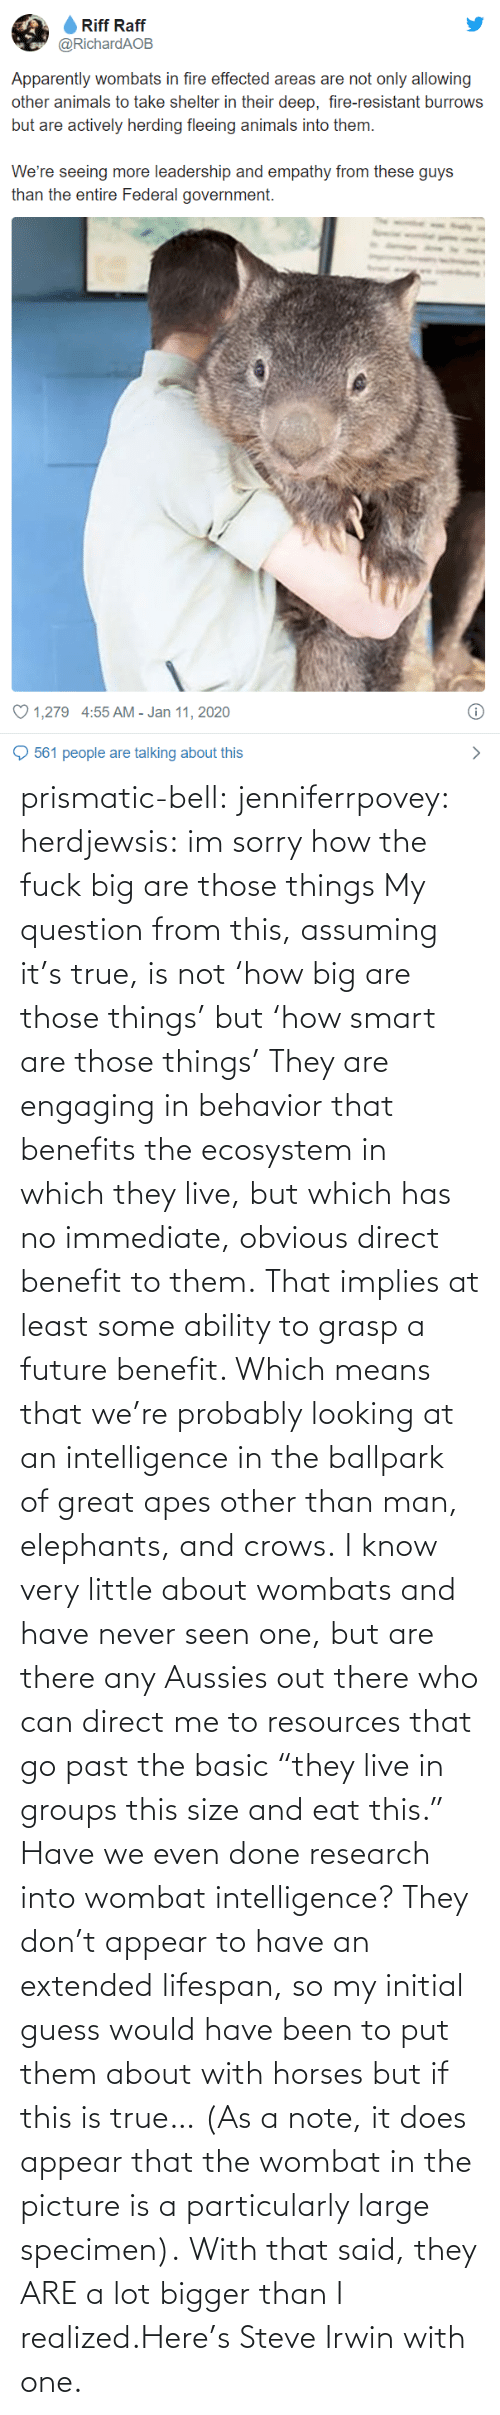 "Here: prismatic-bell:  jenniferrpovey: herdjewsis: im sorry how the fuck big are those things My question from this, assuming it's true, is not 'how big are those things' but 'how smart are those things' They are engaging in behavior that benefits the ecosystem in which they live, but which has no immediate, obvious direct benefit to them. That implies at least some ability to grasp a future benefit. Which means that we're probably looking at an intelligence in the ballpark of great apes other than man, elephants, and crows. I know very little about wombats and have never seen one, but are there any Aussies out there who can direct me to resources that go past the basic ""they live in groups this size and eat this."" Have we even done research into wombat intelligence? They don't appear to have an extended lifespan, so my initial guess would have been to put them about with horses but if this is true… (As a note, it does appear that the wombat in the picture is a particularly large specimen).  With that said, they ARE a lot bigger than I realized.Here's Steve Irwin with one."